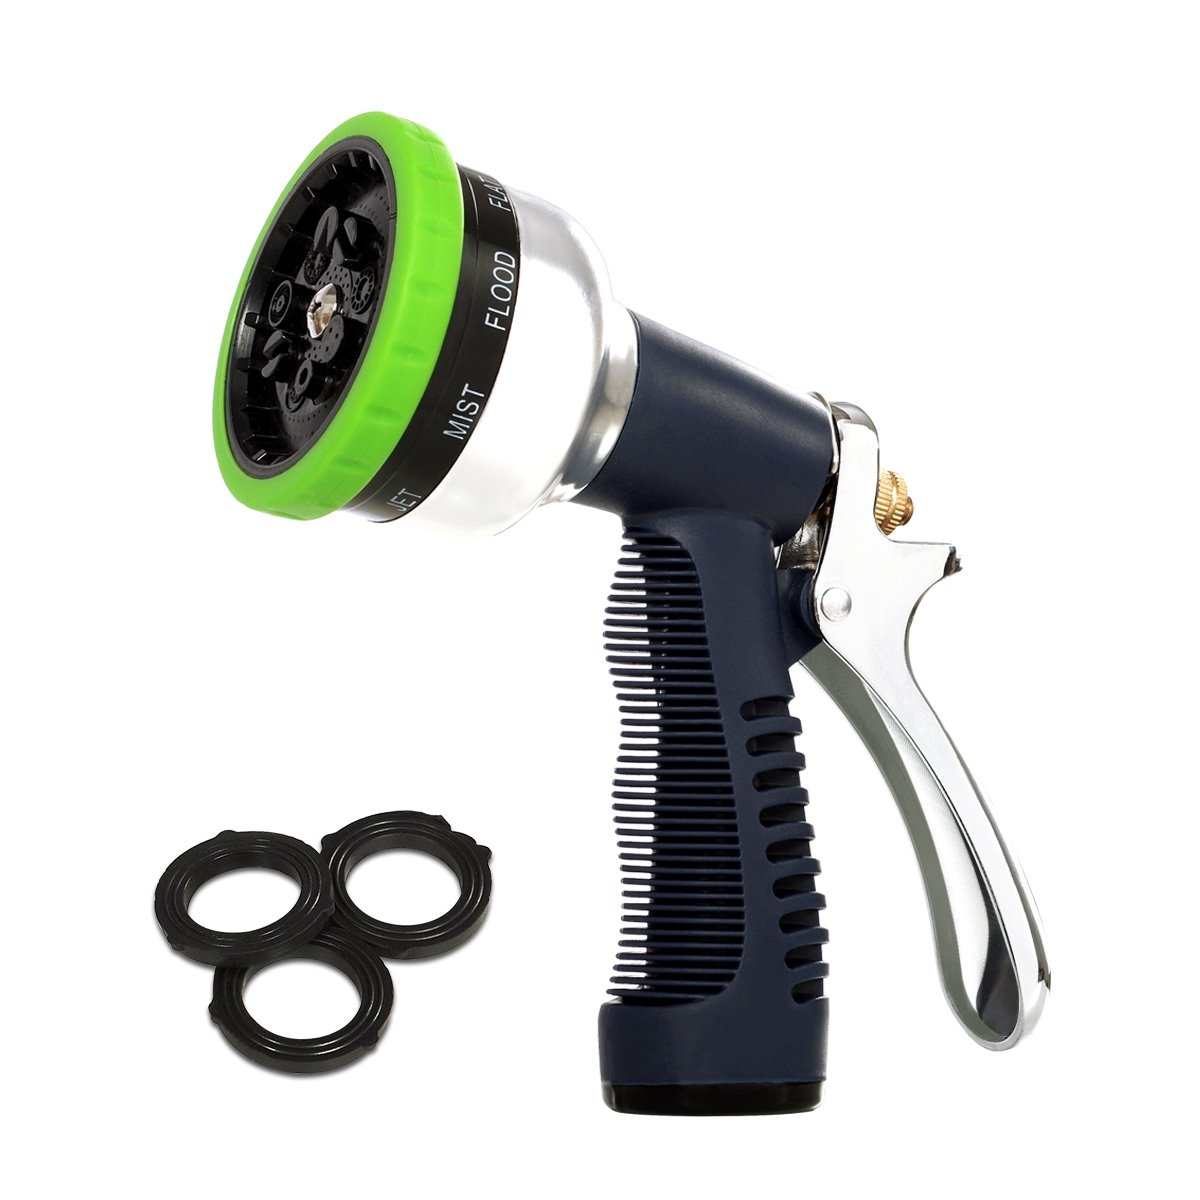 Orford NEW Garden Hose Nozzle Sprayer 2018 NEW 9 Adjustable Watering Patterns, Spray Nozzle High Pressure Heavy Duty And Light For Watering Plants, Cleaning, Car Wash and Showering Pets